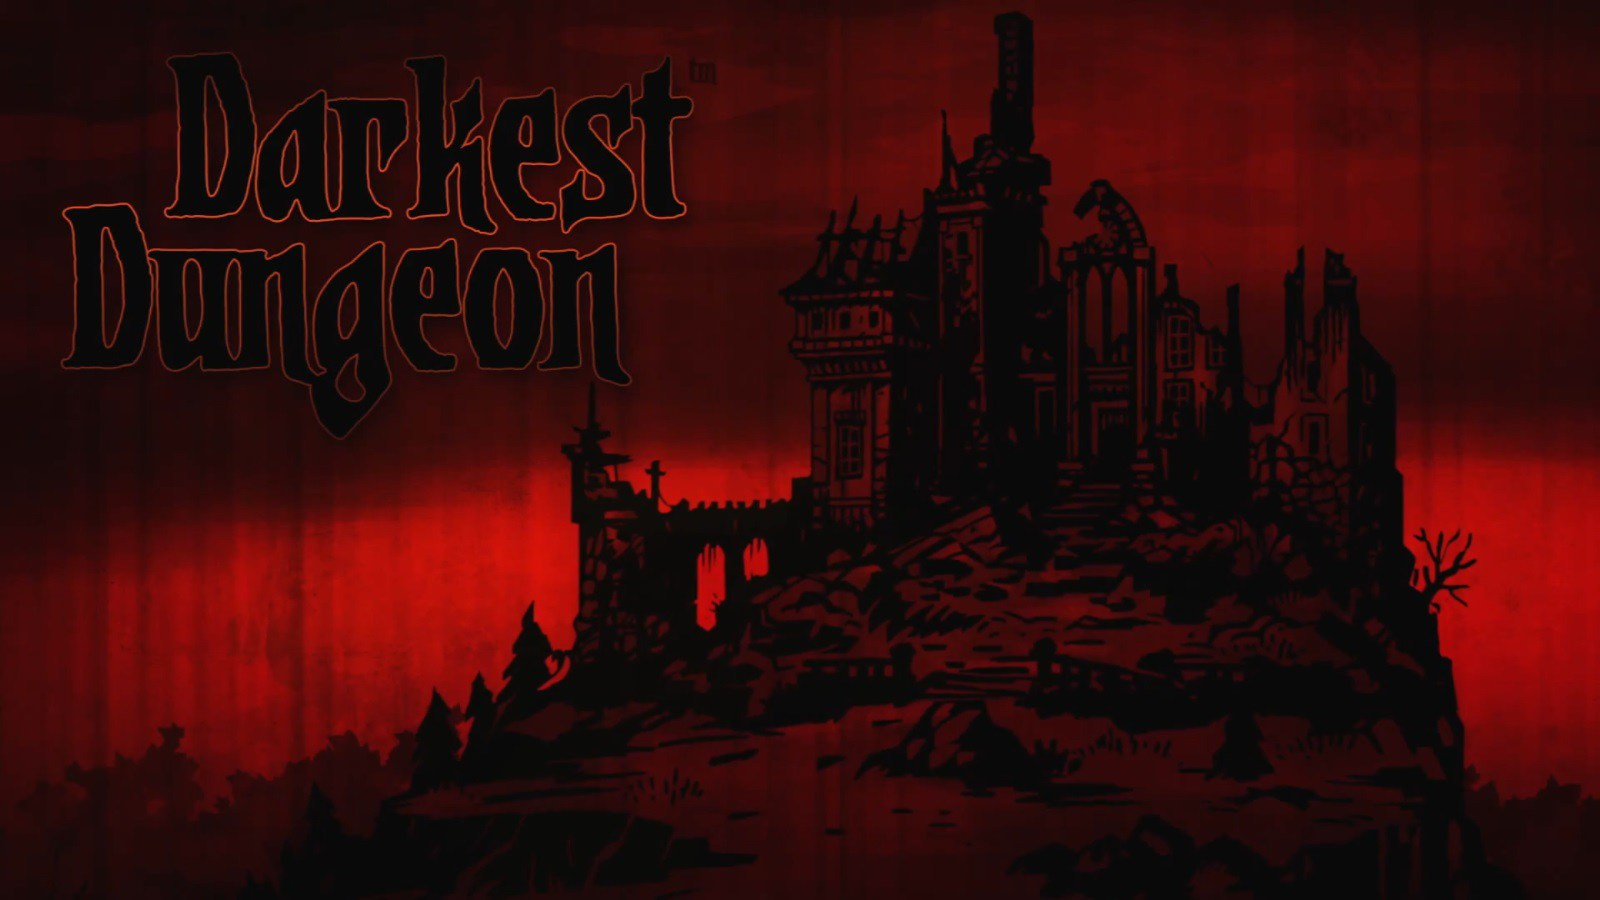 Darkest Dungeon telecharger gratuit de PC et Torrent